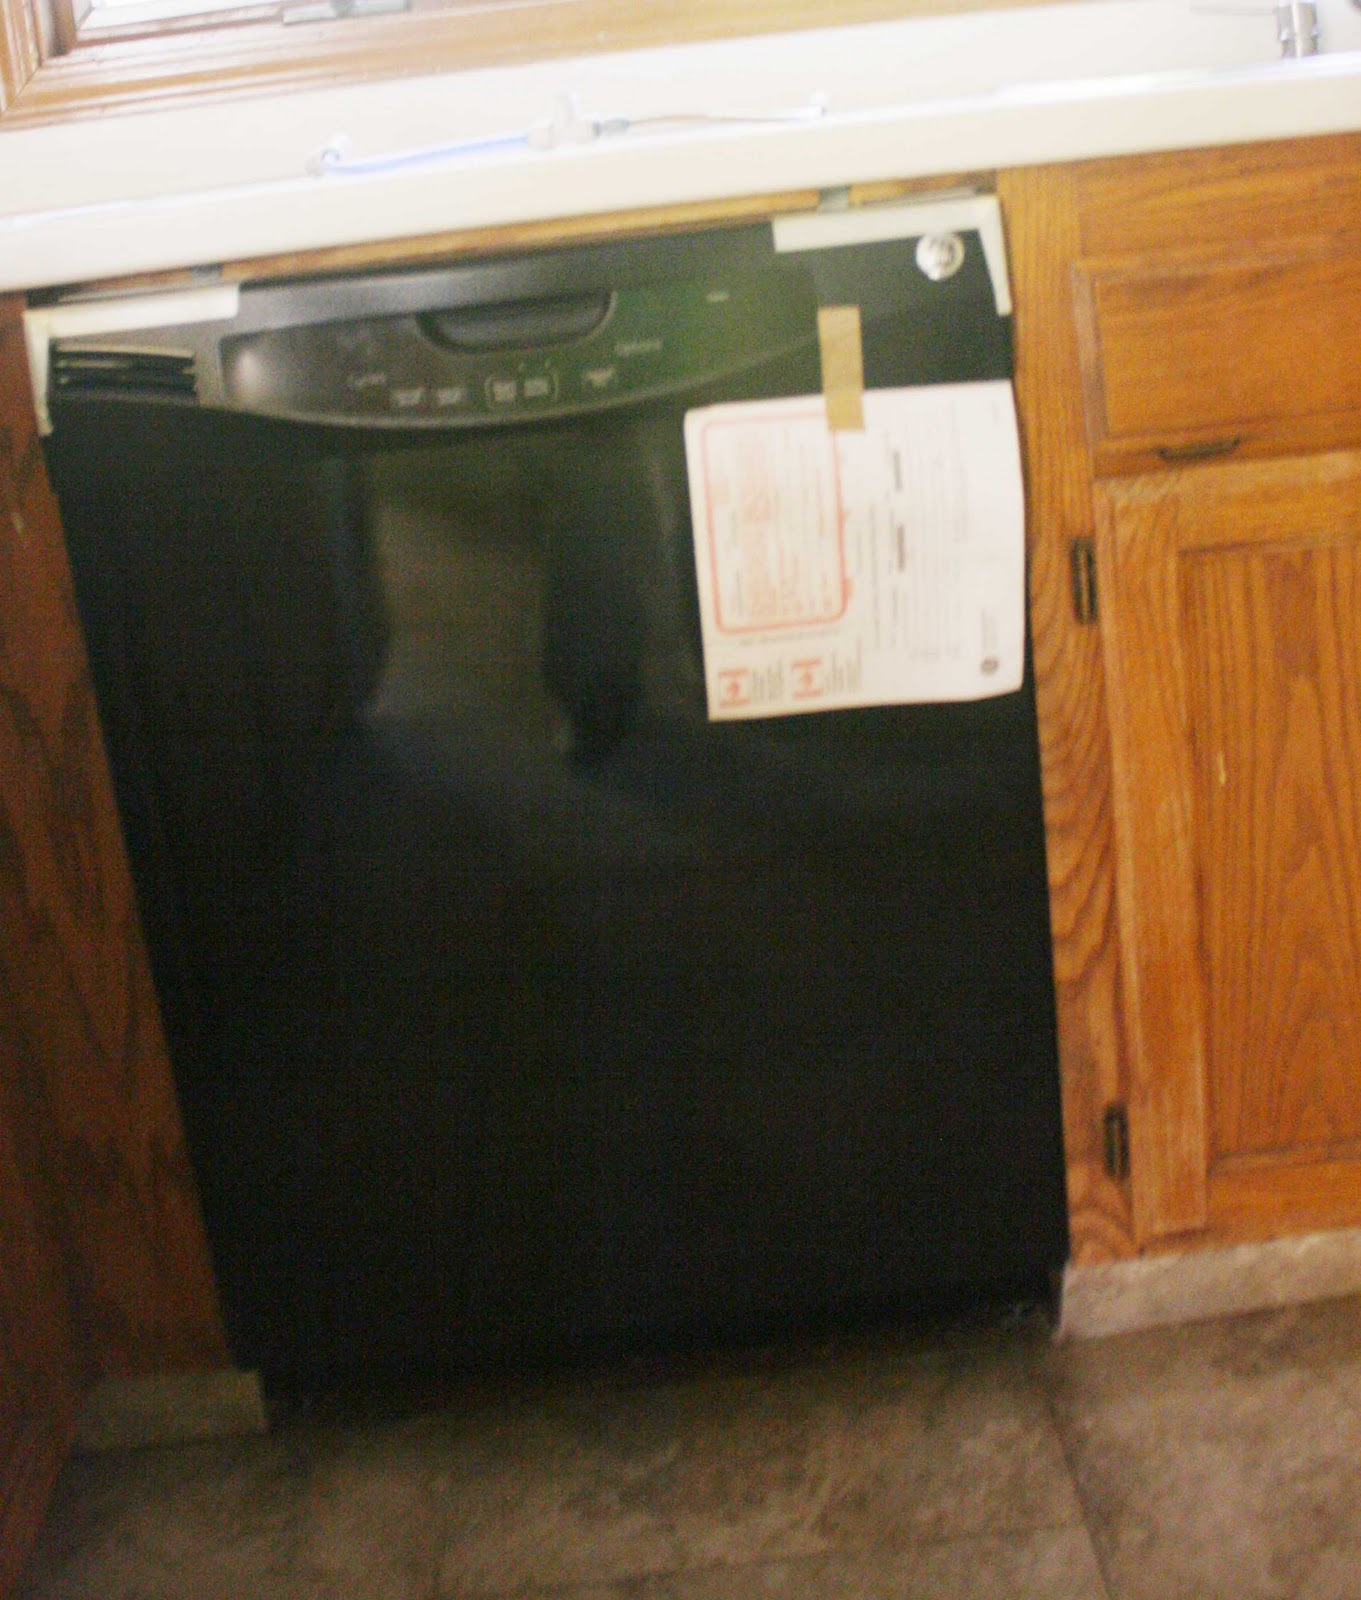 used appliances on craigslist how to buy used appliances craigslist